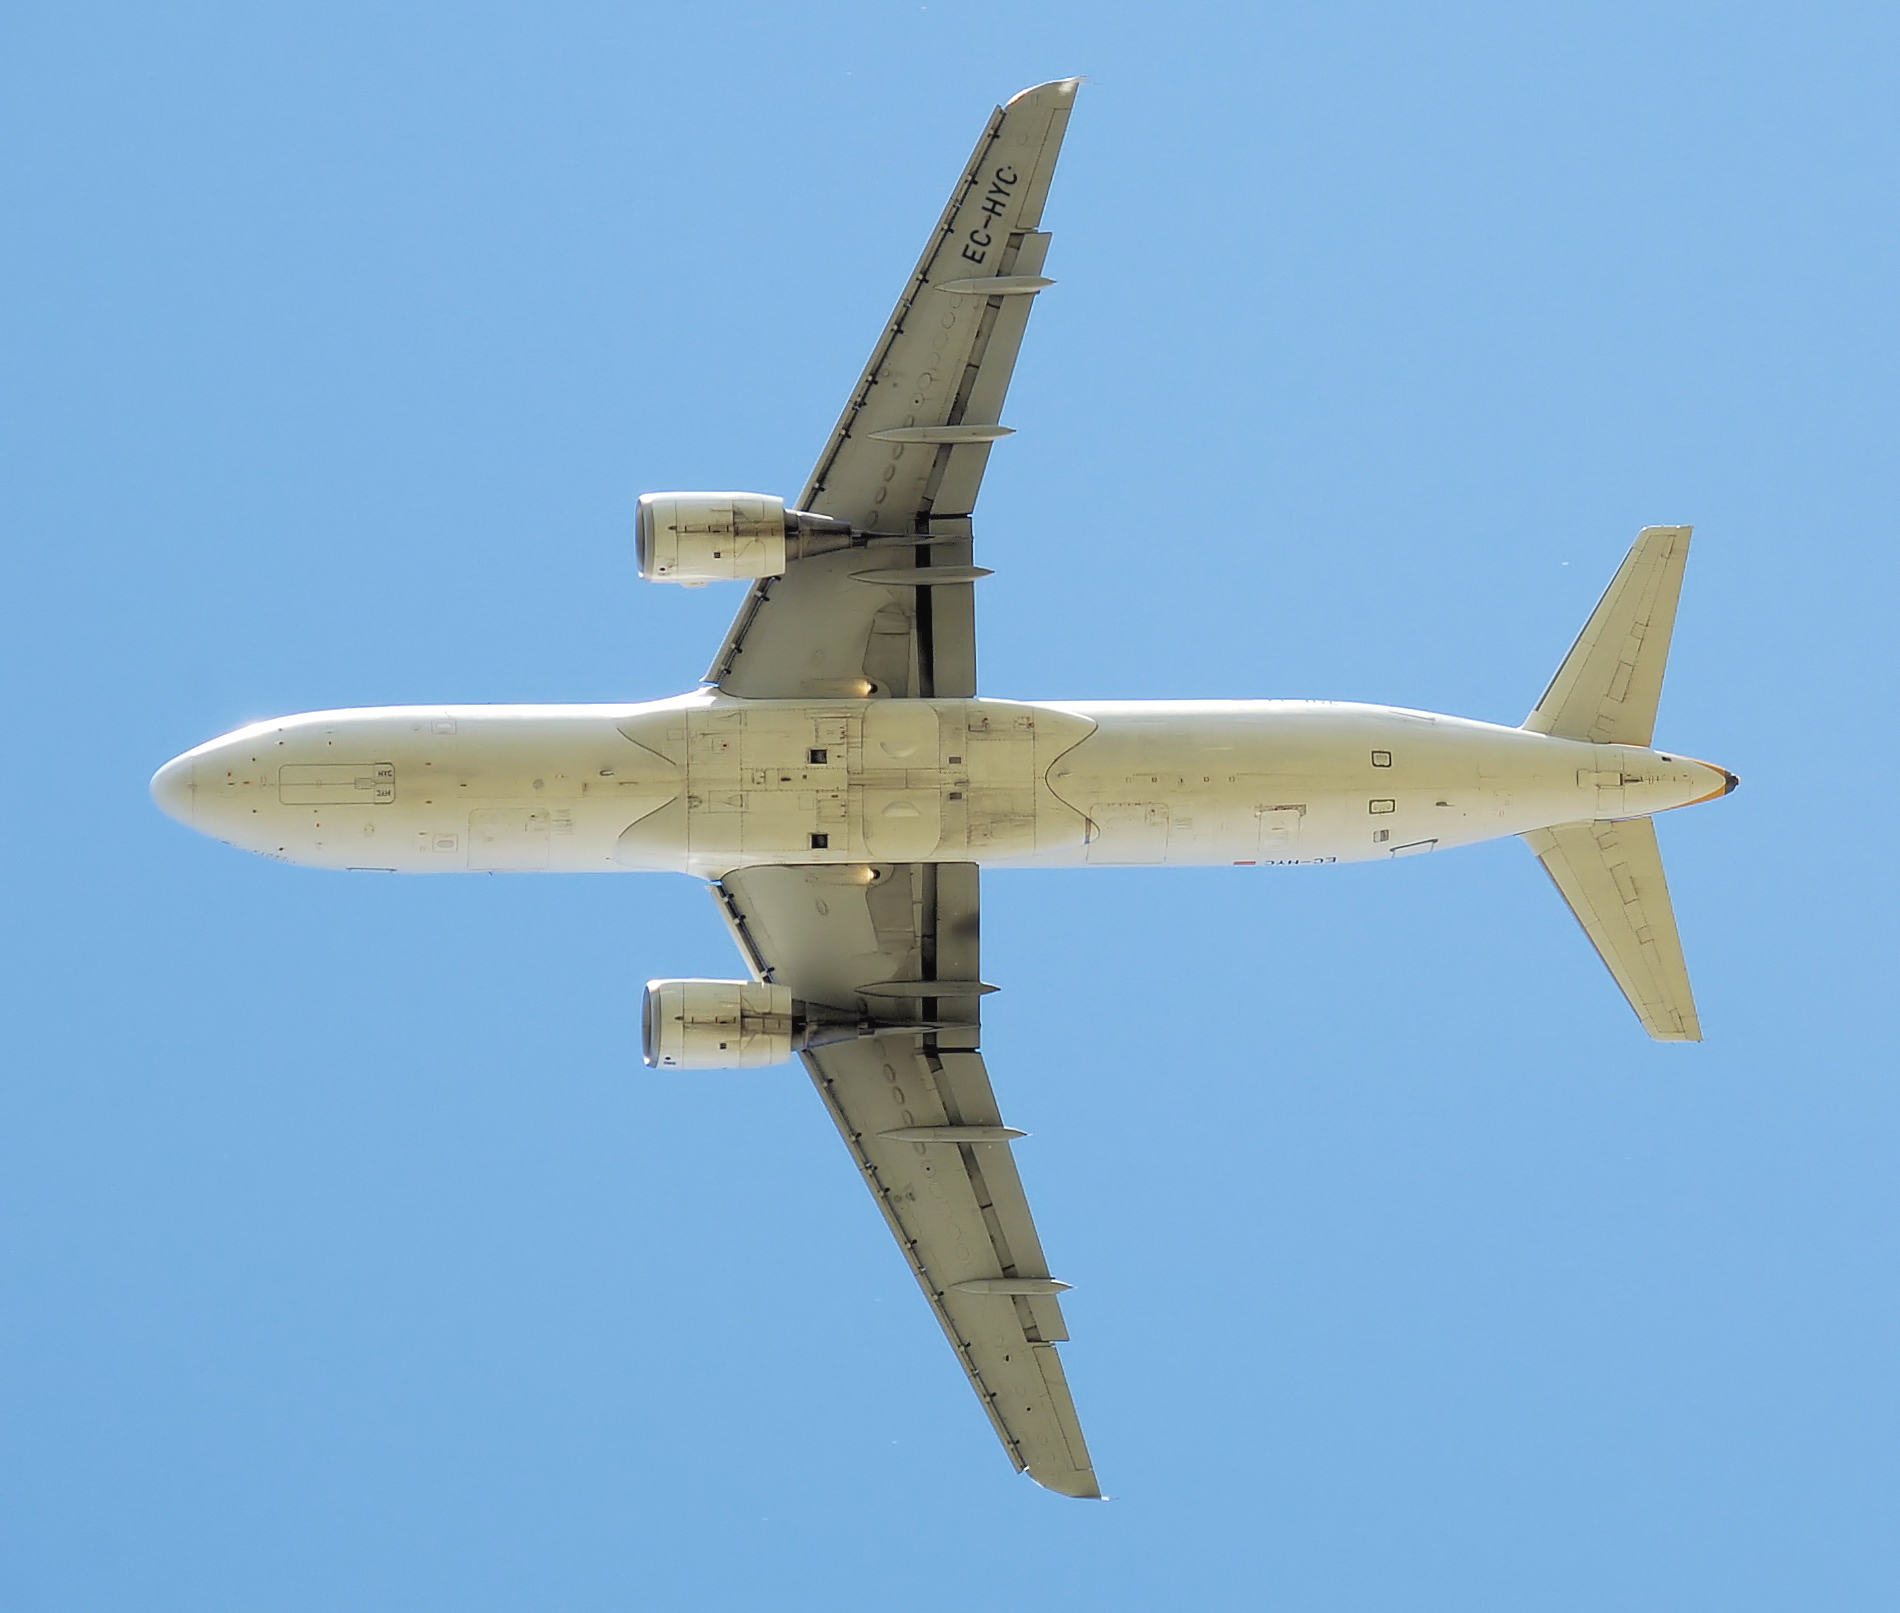 Planform view of an Iberia ((Airbus)) A320-200